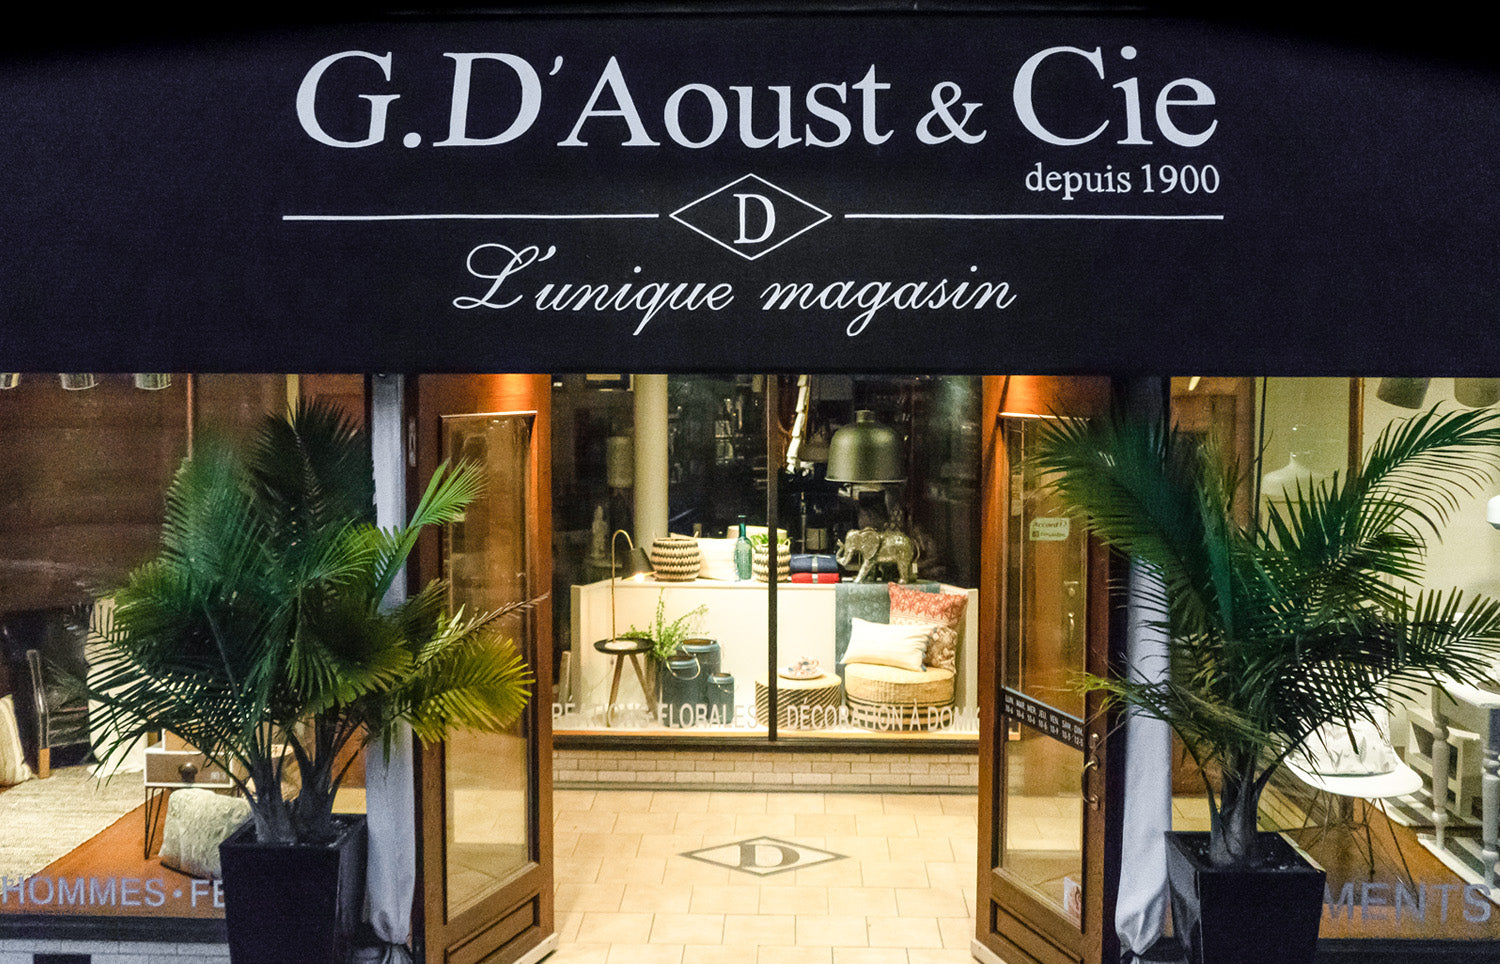 Magasin G, D'aoust et Cie - West Island Montreal Furniture and fashion store